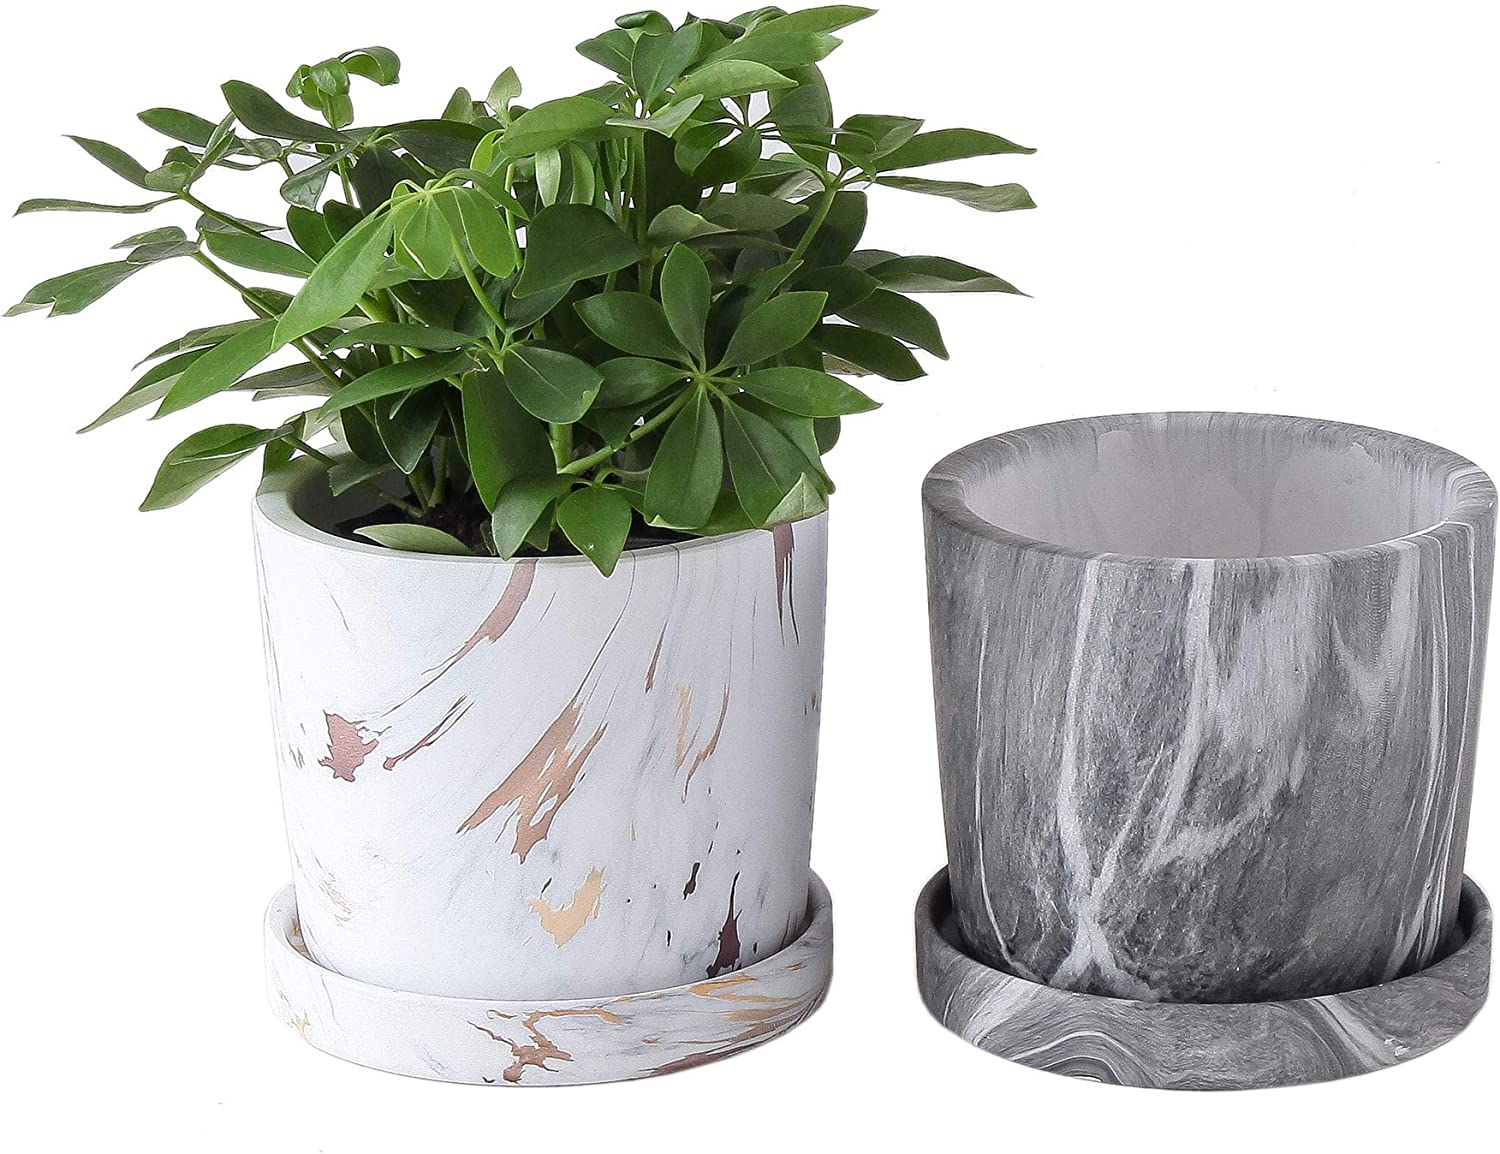 JODA 5.9 inch Planter Pots, Flower Pots with Detached Saucer, Indoor Plant Pots with Drainage - Set of 2 (Grey & Carrara Gold Marble Pattern)